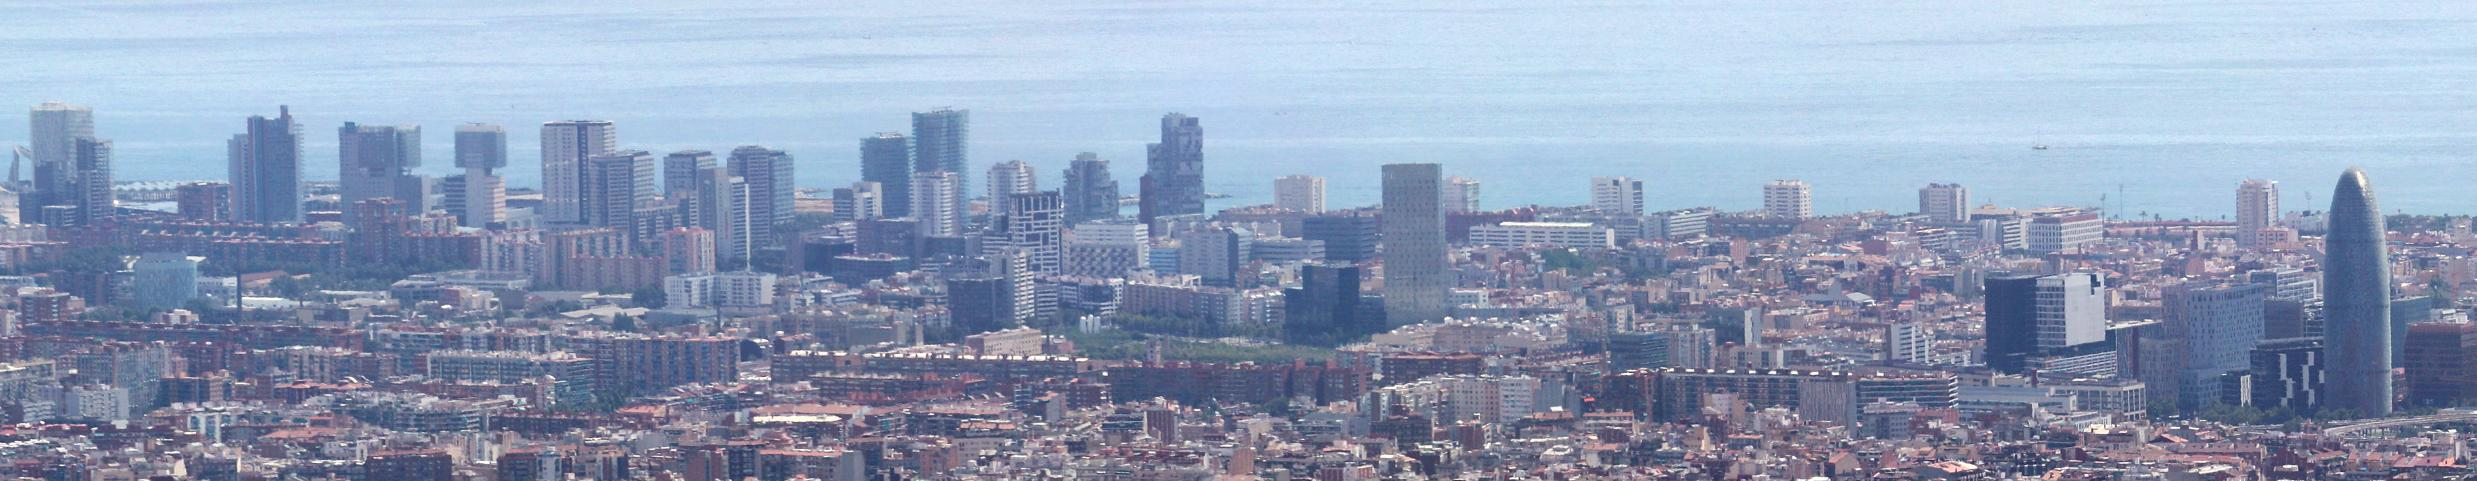 https://i2.wp.com/upload.wikimedia.org/wikipedia/commons/3/3c/Skyscrapers_in_Diagonal_Mar%2C_Barcelona.jpg